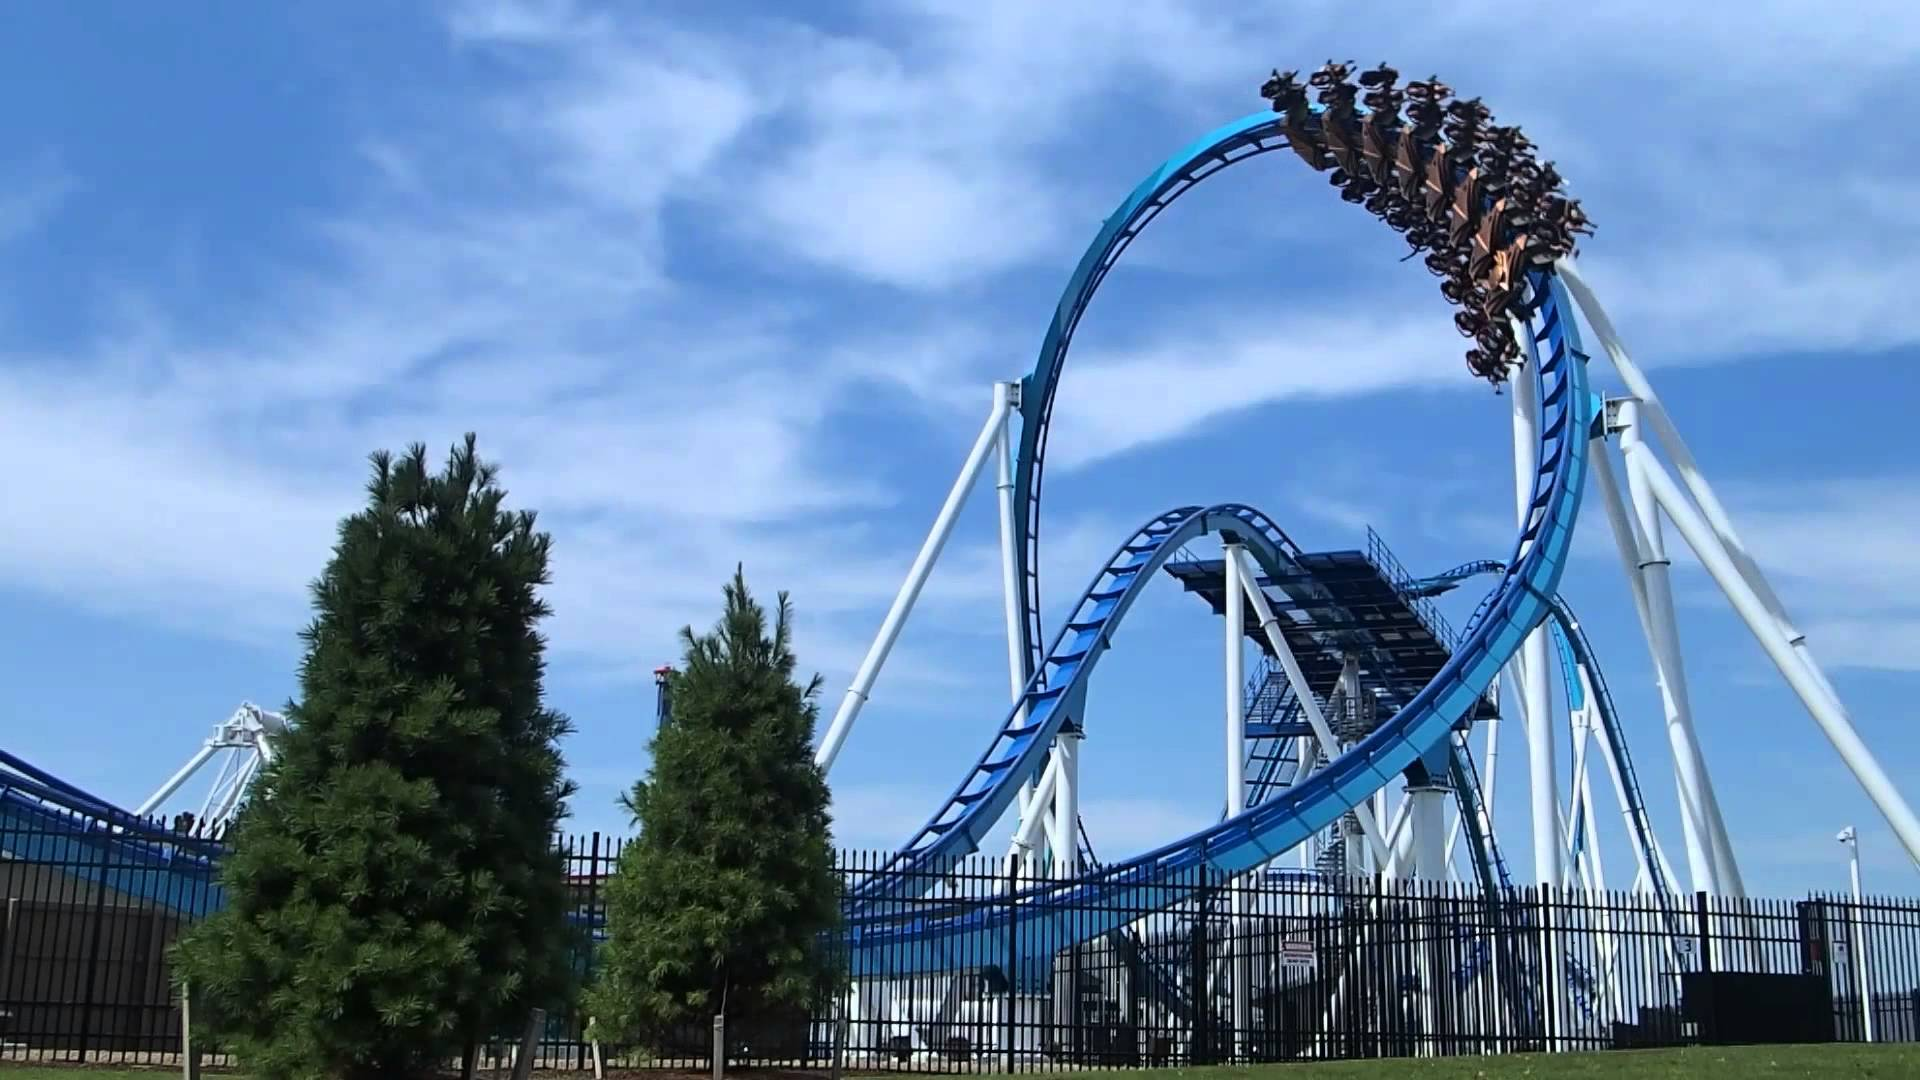 download cedar point wallpaper gallery